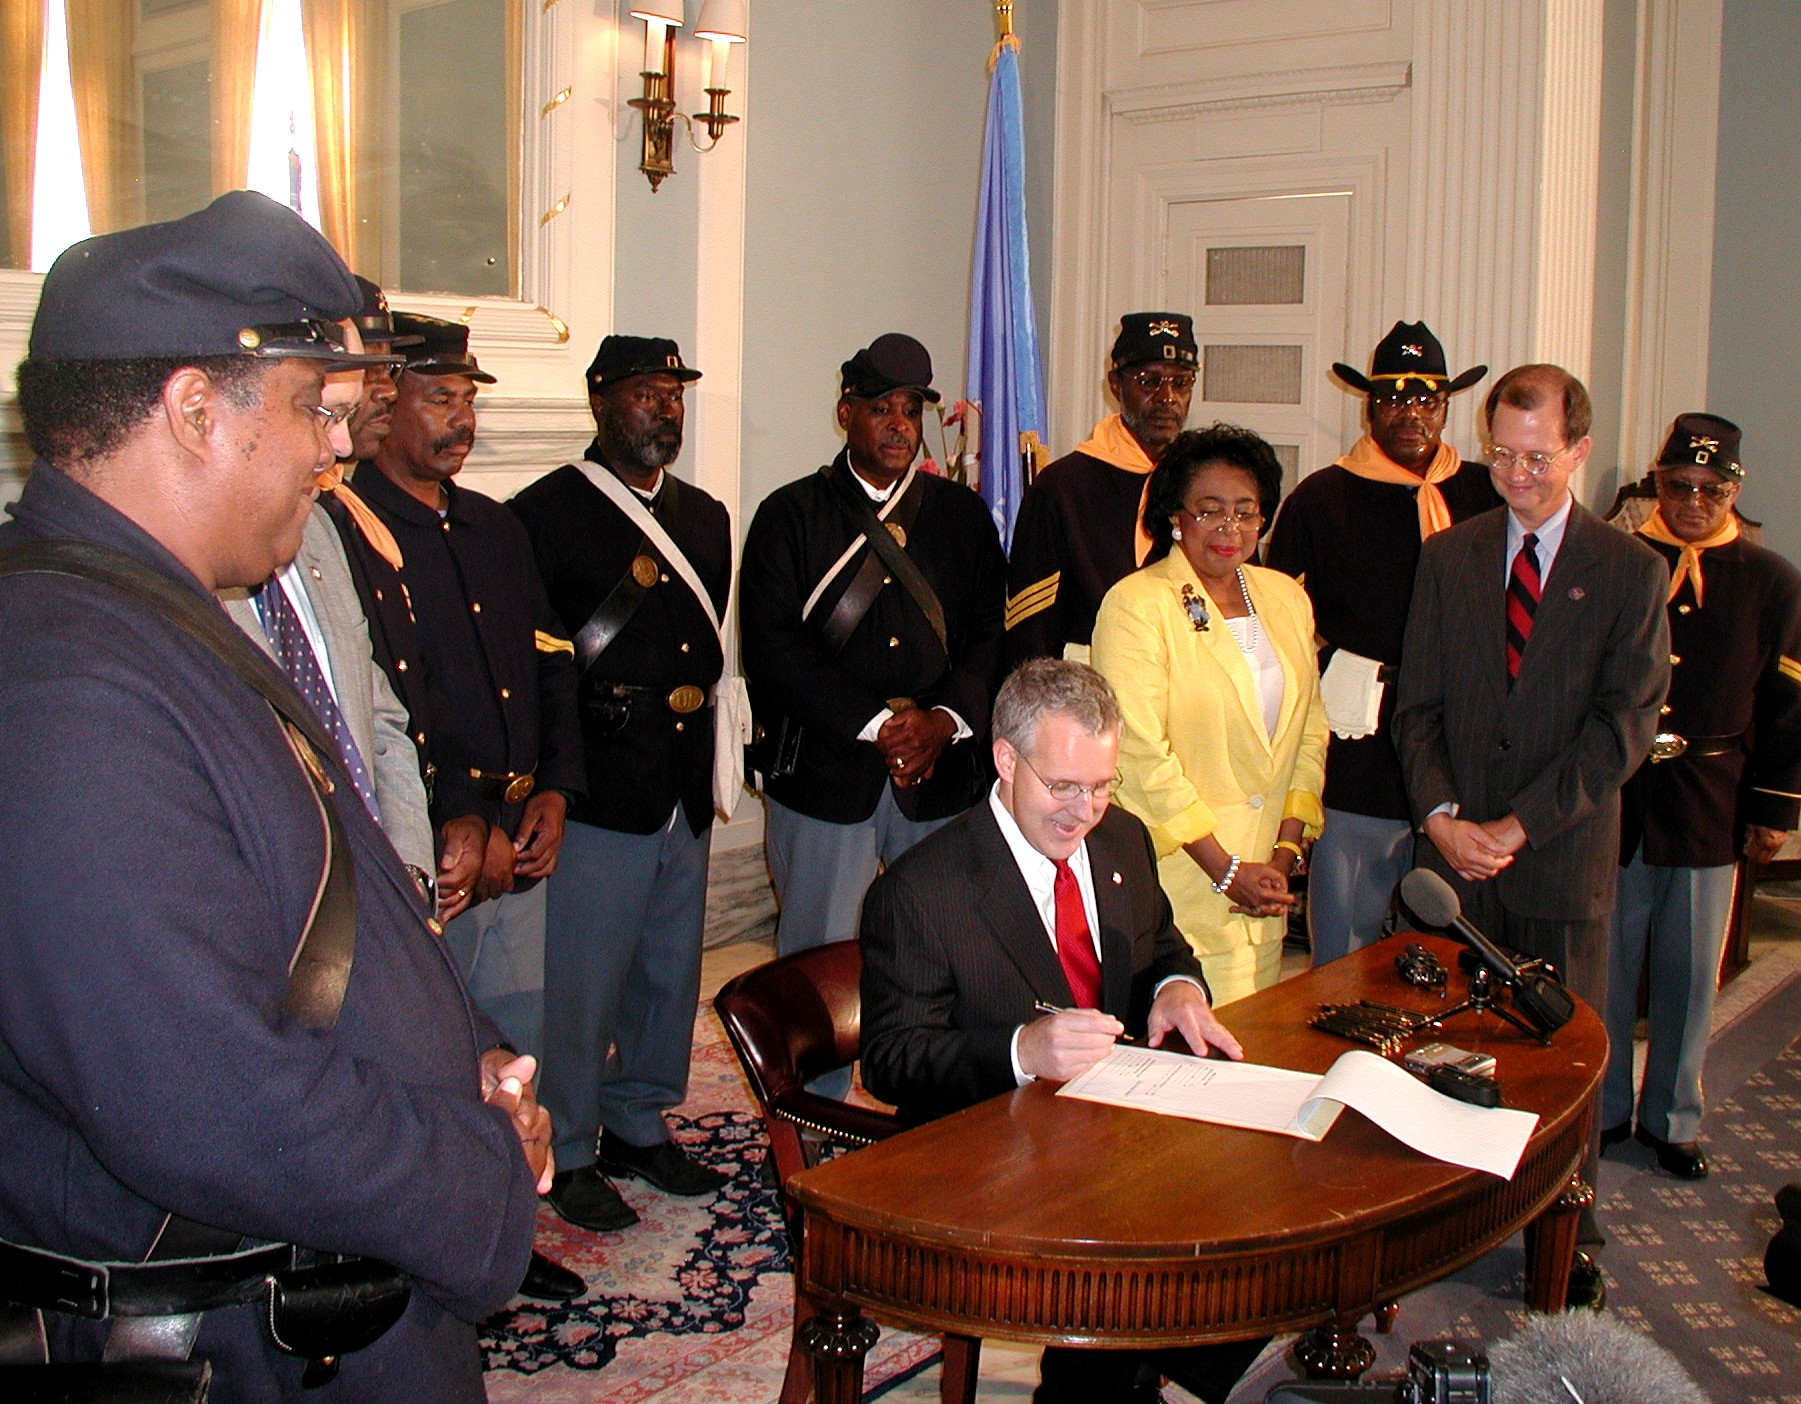 Sen. Eason McIntyre and the Buffalo Soldiers watch Gov. Henry sign the bill.